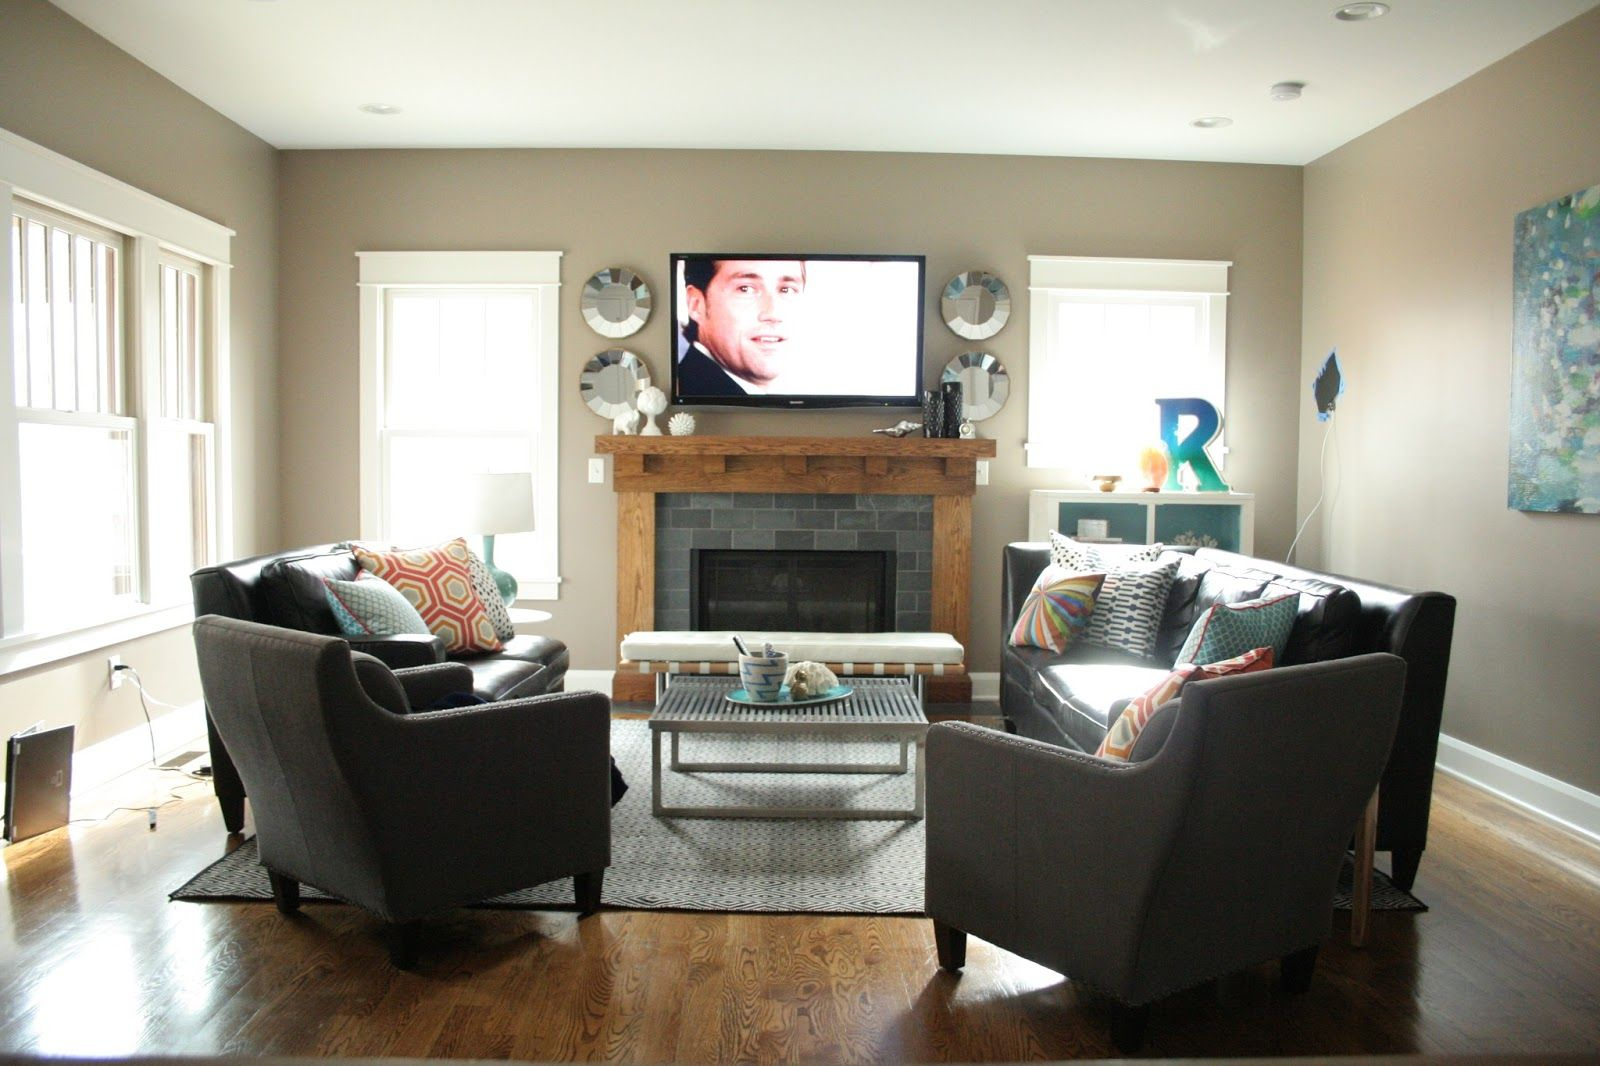 Designing Living Room Layout And Beauty Design Living Room with 13 Awesome Ways How to Improve Small Living Room Set Up